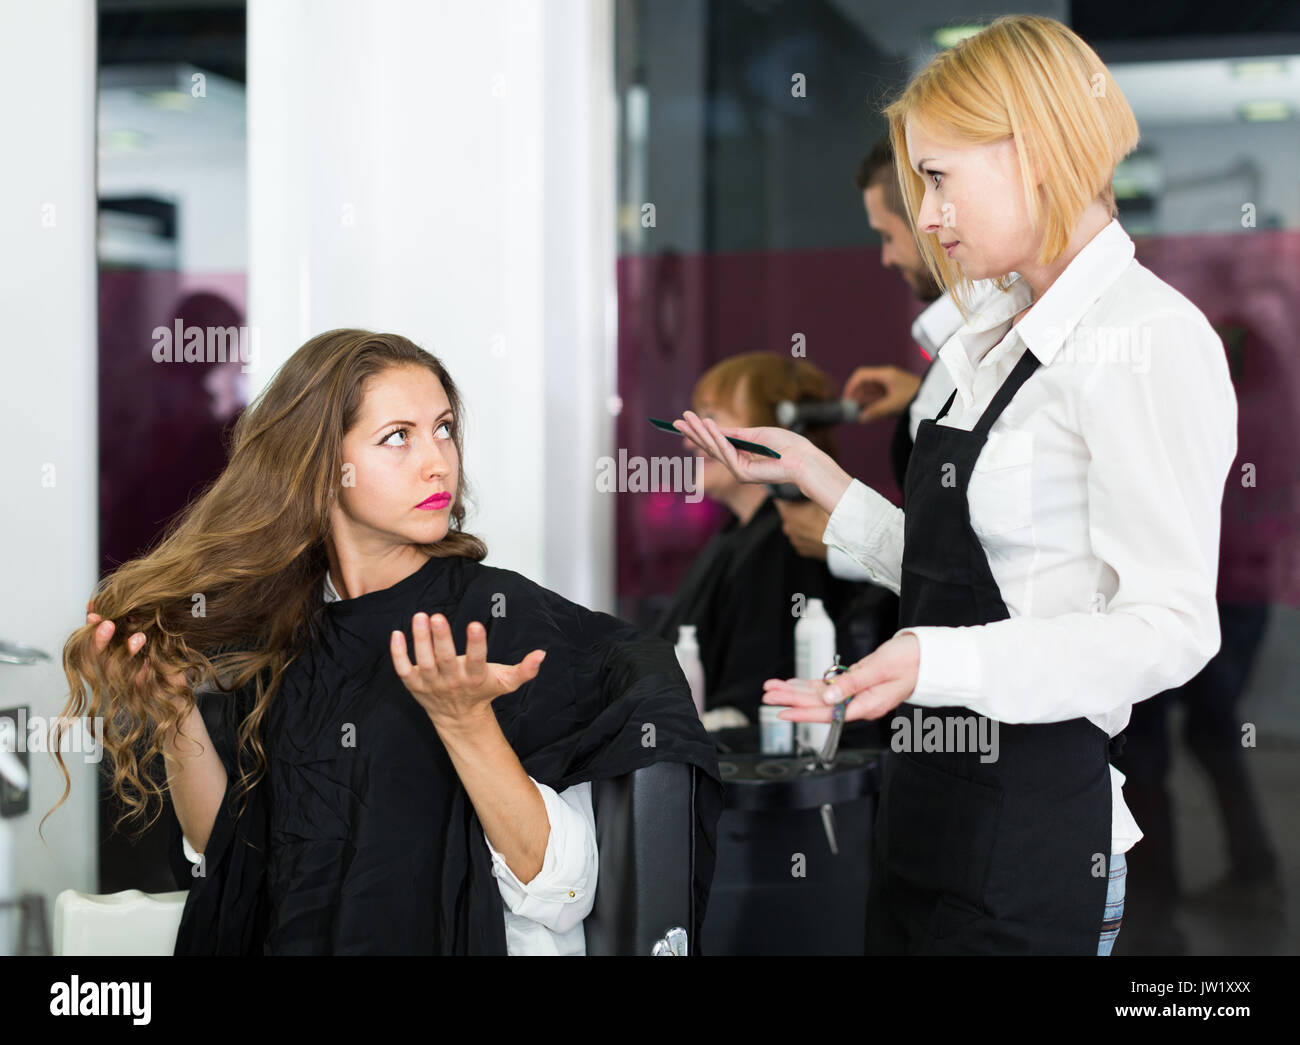 Barber quarrels with the female client about haircut in the barbershop - Stock Image